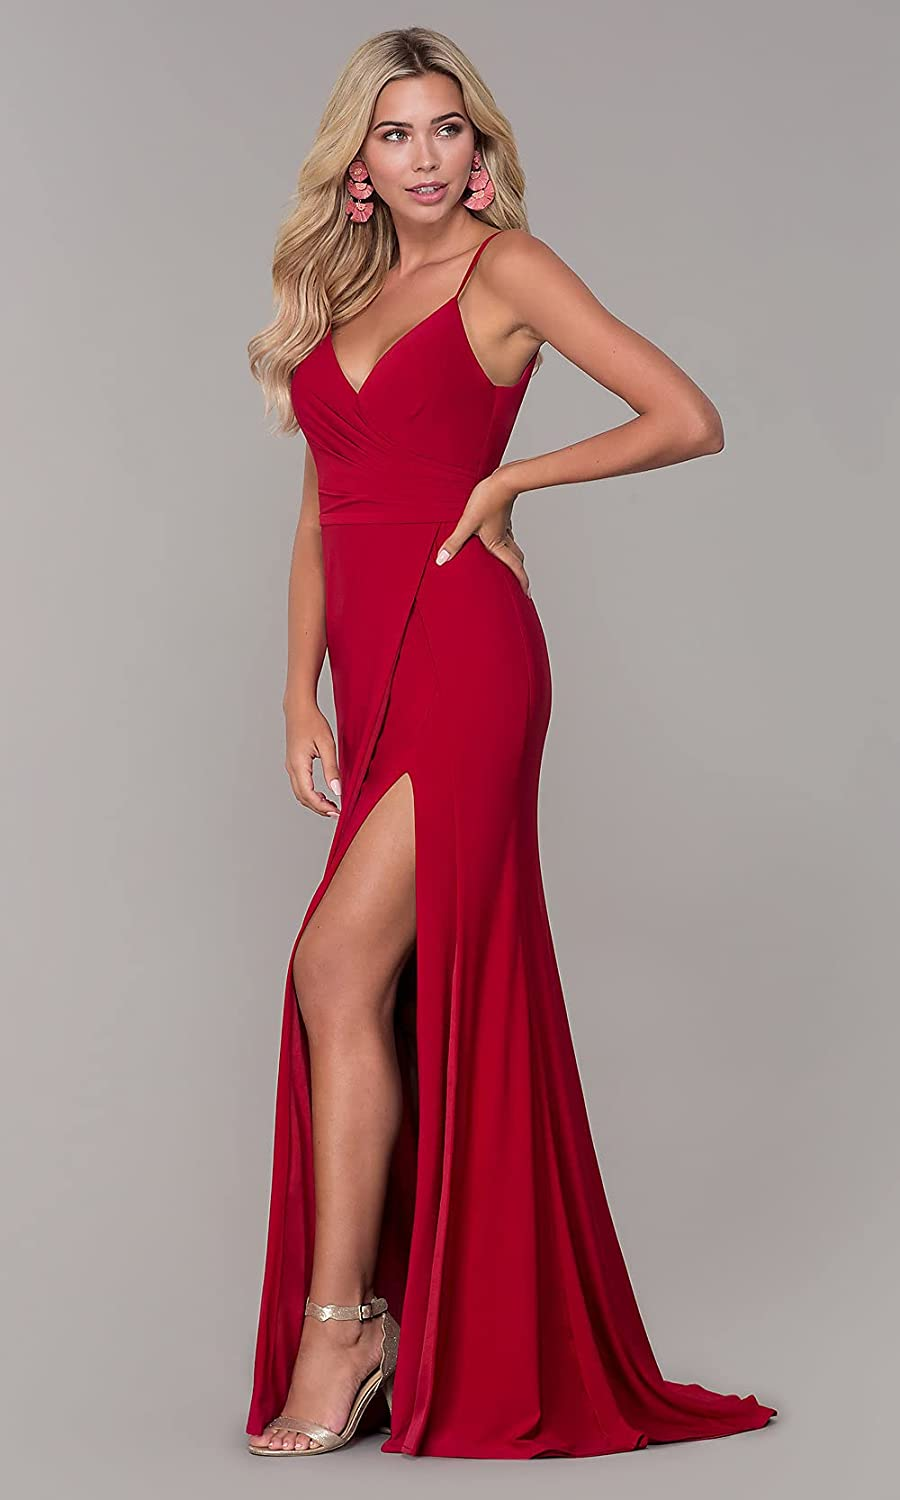 Women's V Neck Mermaid Long Prom Dress Chiffon Ruched Slit Formal Party Gown